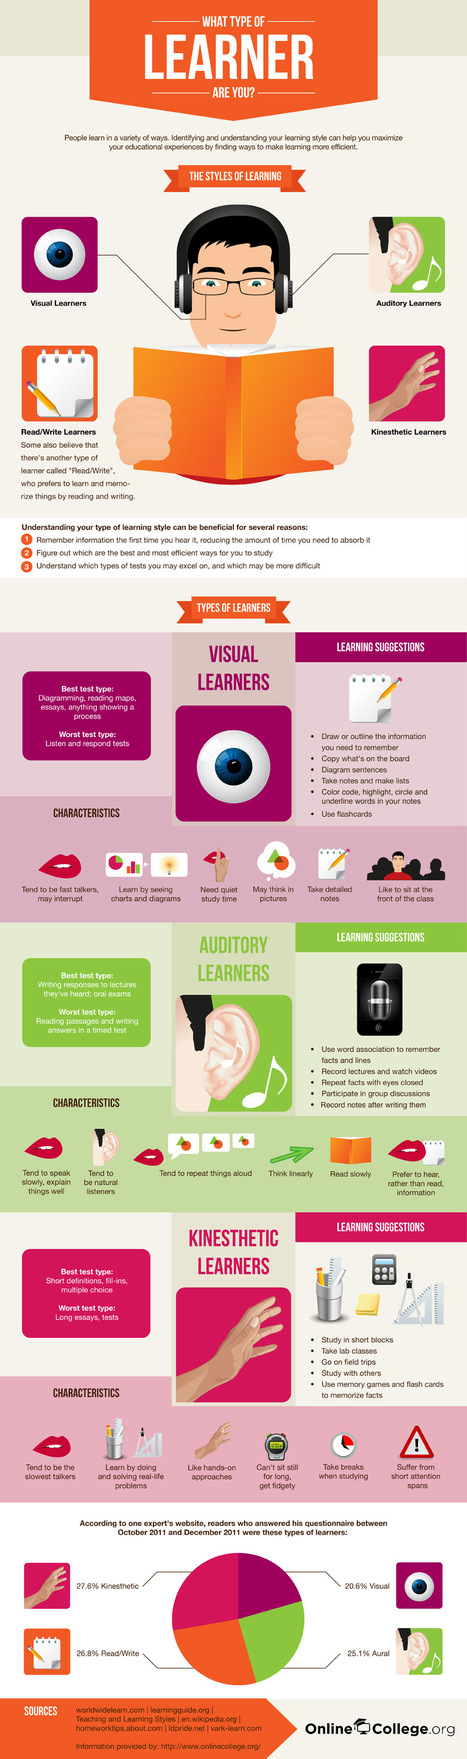 What Type of Learner Are You? [Infographic] | Creativity as changing tool | Scoop.it